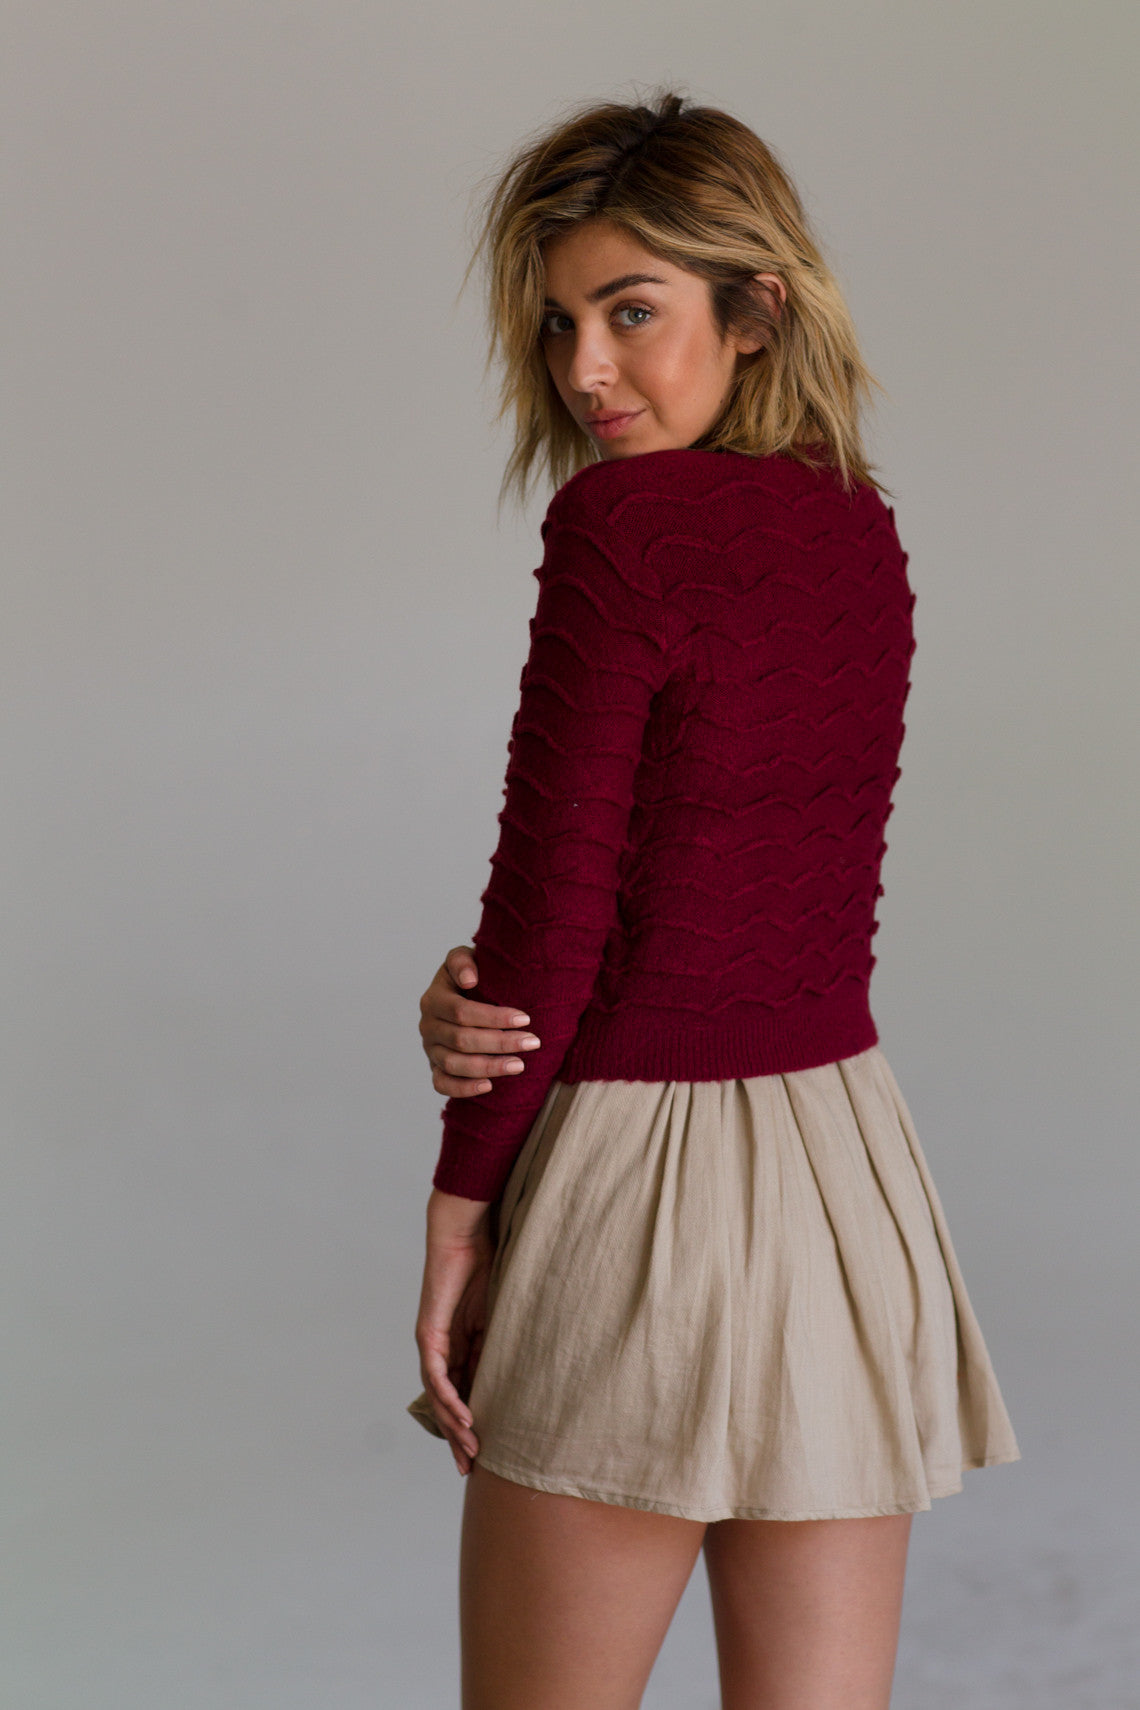 Undercurrent Sweater-Women - Apparel - Sweaters - Pull Over-Product Details Poly Blend Long sleeve color textured pullover sweater *Runs Small* Model is wearing a size Small Hand wash cold, lay flat to dry Easy Measure Conversion XS/0 S/1 M/2 L/3 US 0/2 2/4 6/8 8/10 AUS 4/6 6/8 10/12 12/14 BRAZIL 34/36 36/38 40/42 42/44 CHINA 76a/80a 80a/84a 88a/92a 92a/95a EUP 32/34 34/36 38/40 40/42 JAP 5/7 7/9 11/13 13/15 RUS 42 42/44 46/48 50/52 UK 4/6 6/8 10/12 12/14 Detailed View Size Chart-Keyomi-Sook